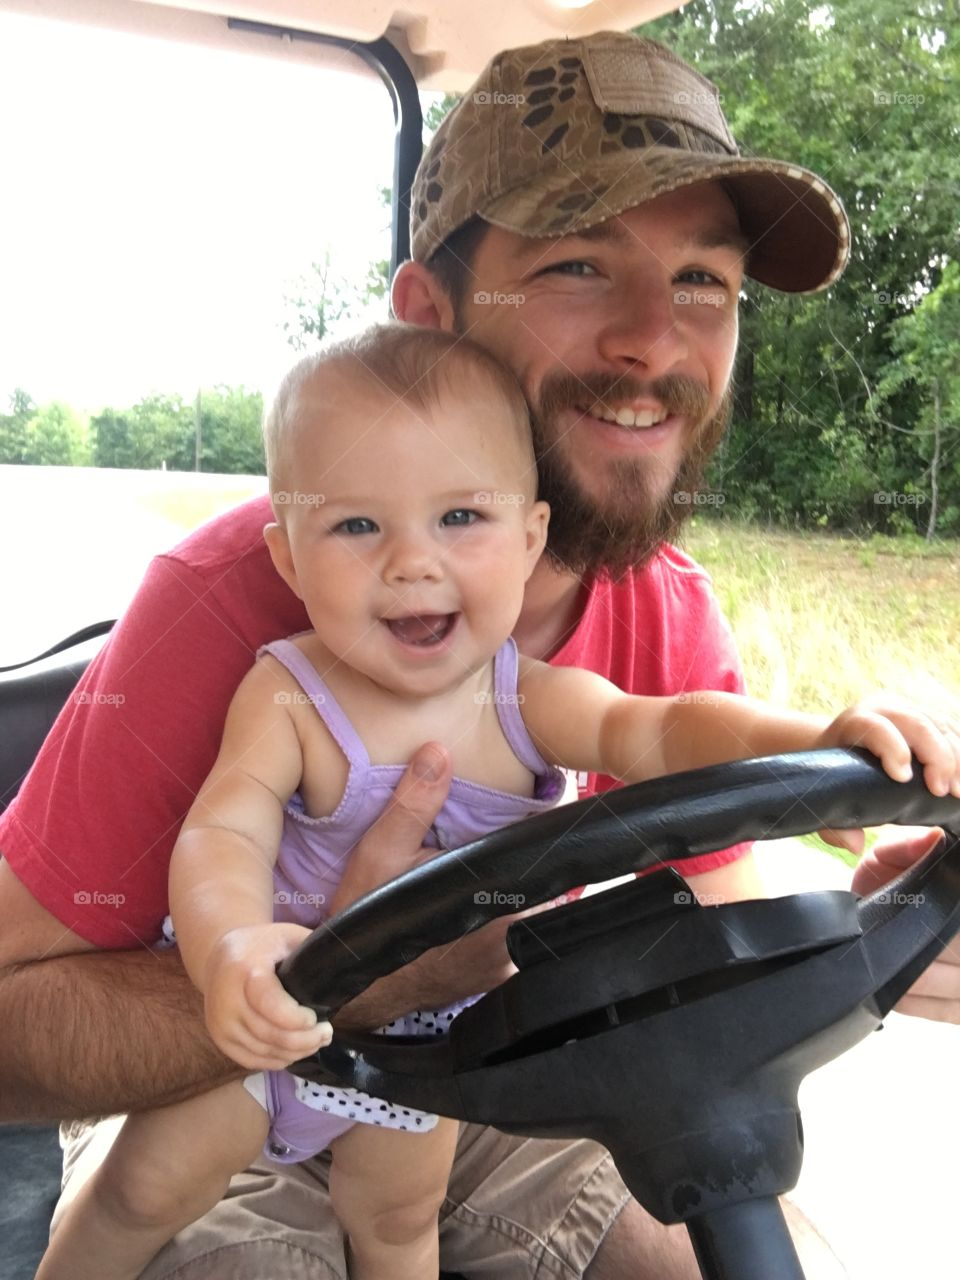 Cute baby with father holding steering wheel